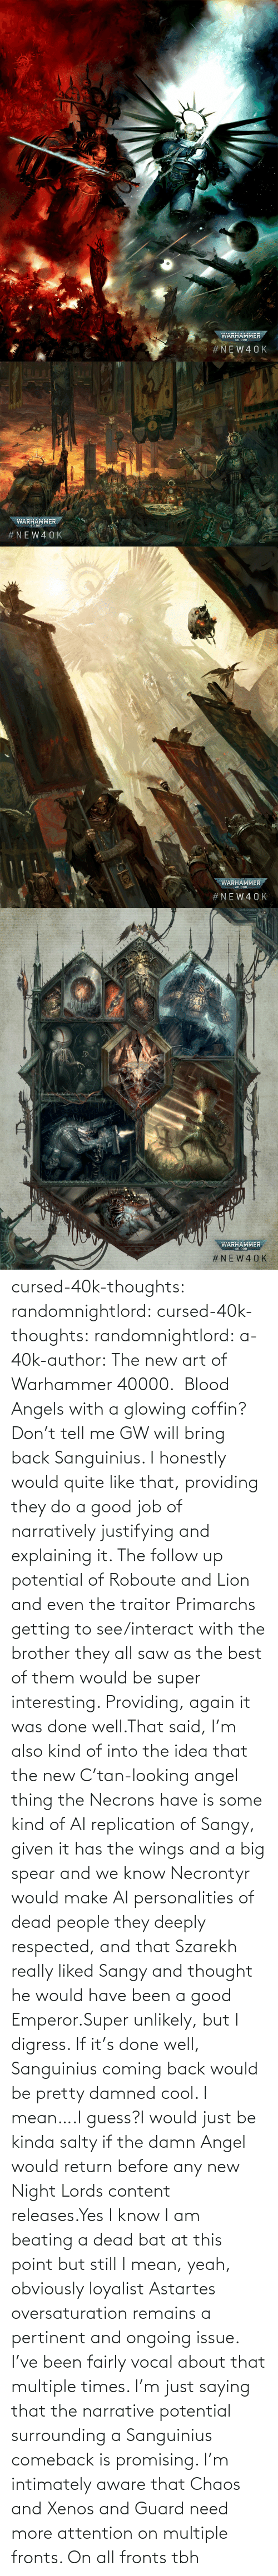 i would: cursed-40k-thoughts:  randomnightlord:  cursed-40k-thoughts:  randomnightlord: a-40k-author: The new art of Warhammer 40000.    Blood Angels with a glowing coffin? Don't tell me GW will bring back Sanguinius.   I honestly would quite like that, providing they do a good job of narratively justifying and explaining it. The follow up potential of Roboute and Lion and even the traitor Primarchs getting to see/interact with the brother they all saw as the best of them would be super interesting. Providing, again it was done well.That said, I'm also kind of into the idea that the new C'tan-looking angel thing the Necrons have is some kind of AI replication of Sangy, given it has the wings and a big spear and we know Necrontyr would make AI personalities of dead people they deeply respected, and that Szarekh really liked Sangy and thought he would have been a good Emperor.Super unlikely, but I digress. If it's done well, Sanguinius coming back would be pretty damned cool.    I mean….I guess?I would just be kinda salty if the damn Angel would return before any new Night Lords content releases.Yes I know I am beating a dead bat at this point but still   I mean, yeah, obviously loyalist Astartes oversaturation remains a pertinent and ongoing issue. I've been fairly vocal about that multiple times. I'm just saying that the narrative potential surrounding a Sanguinius comeback is promising. I'm intimately aware that Chaos and Xenos and Guard need more attention on multiple fronts.    On all fronts tbh